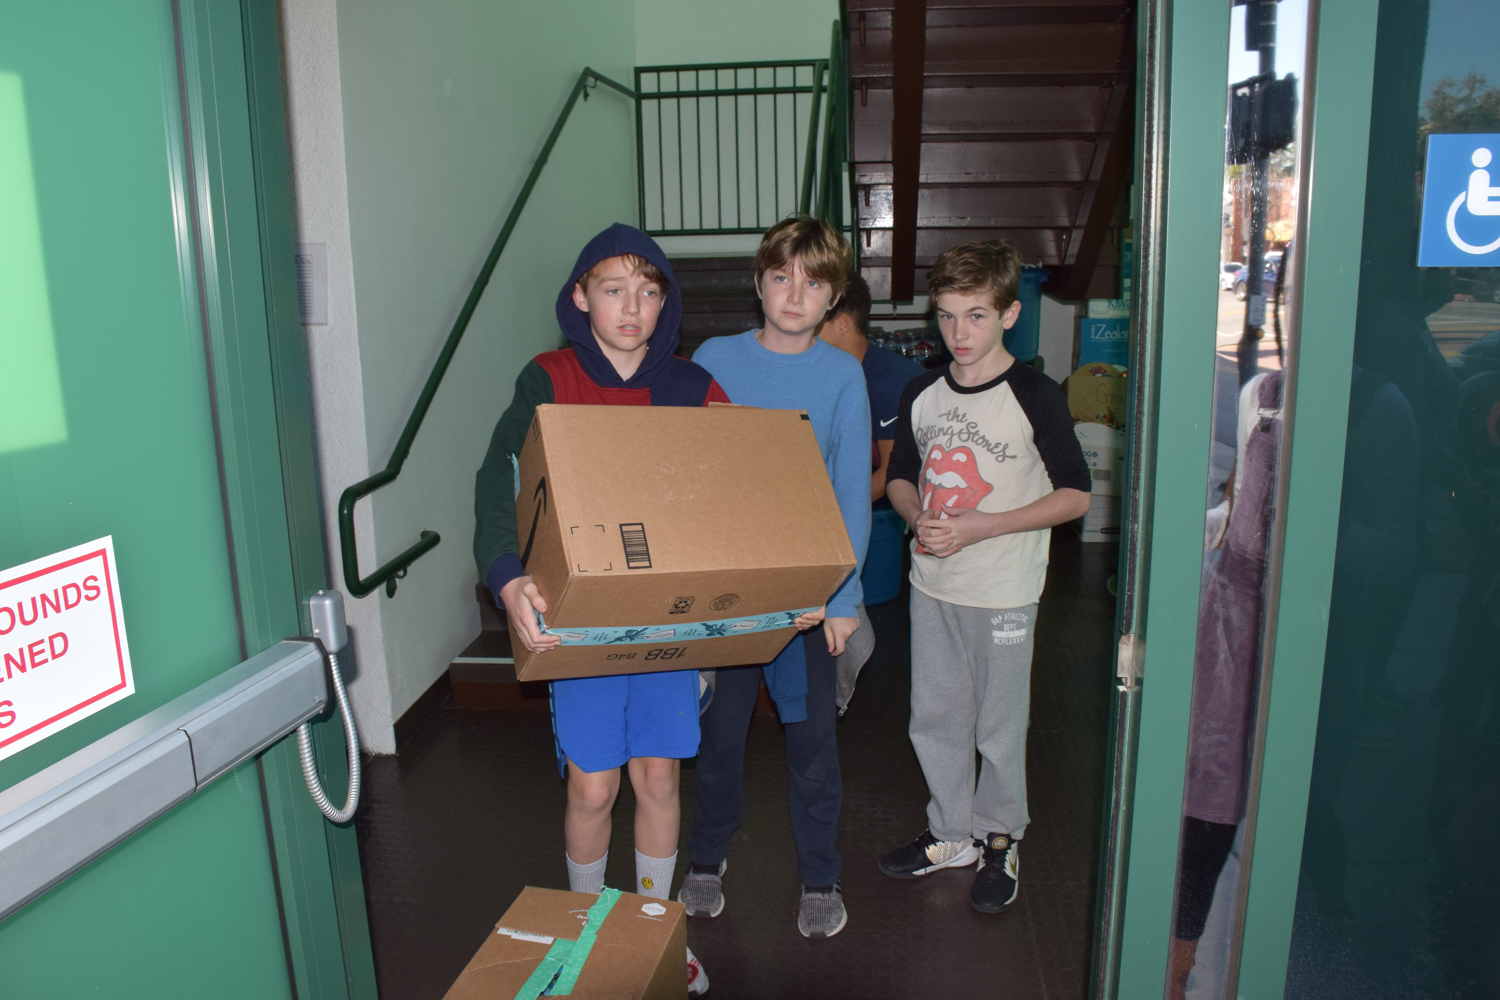 5th graders help load the MEND truck with boxes and bags of gently-used clothing donations.